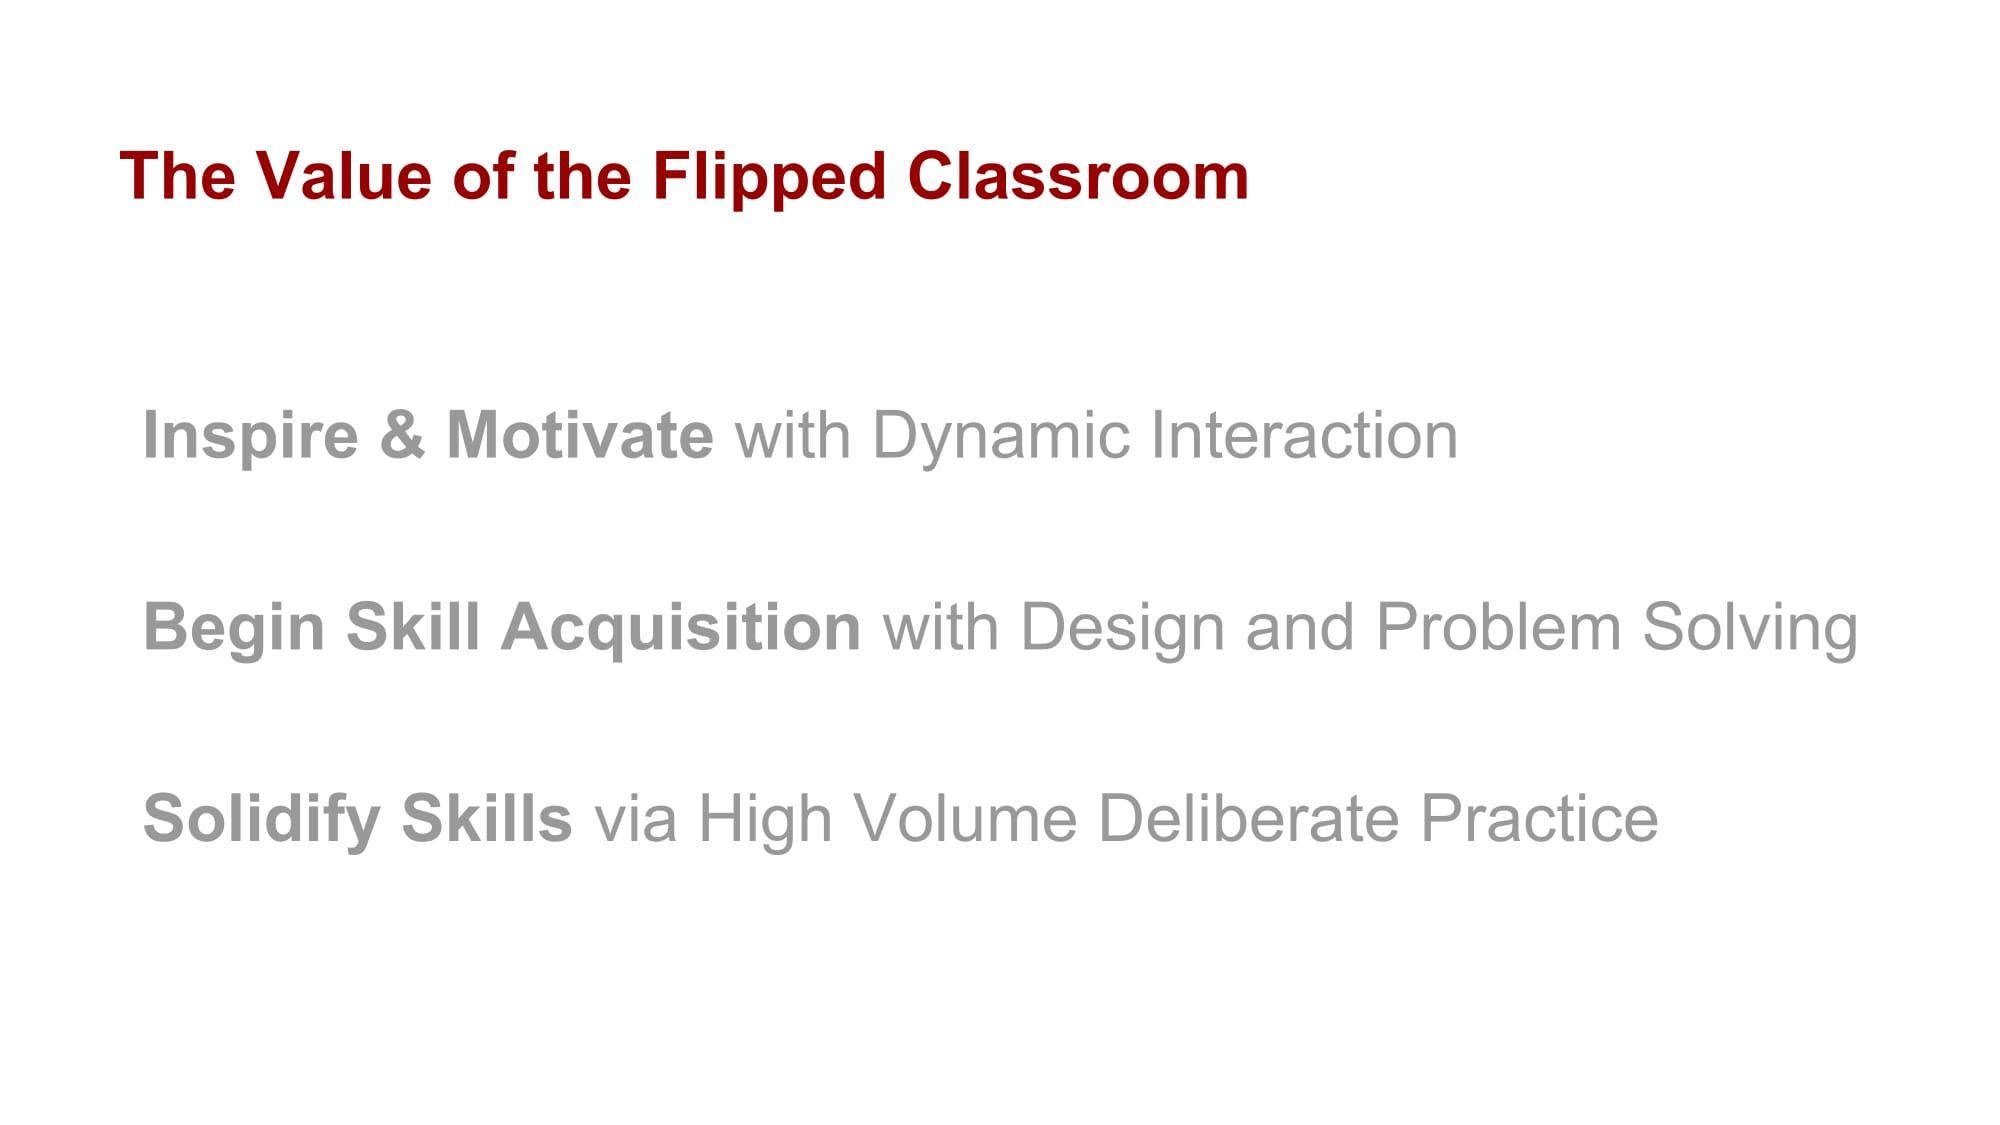 5 Easy Steps for the Flipped Classroom (1)-03.jpg